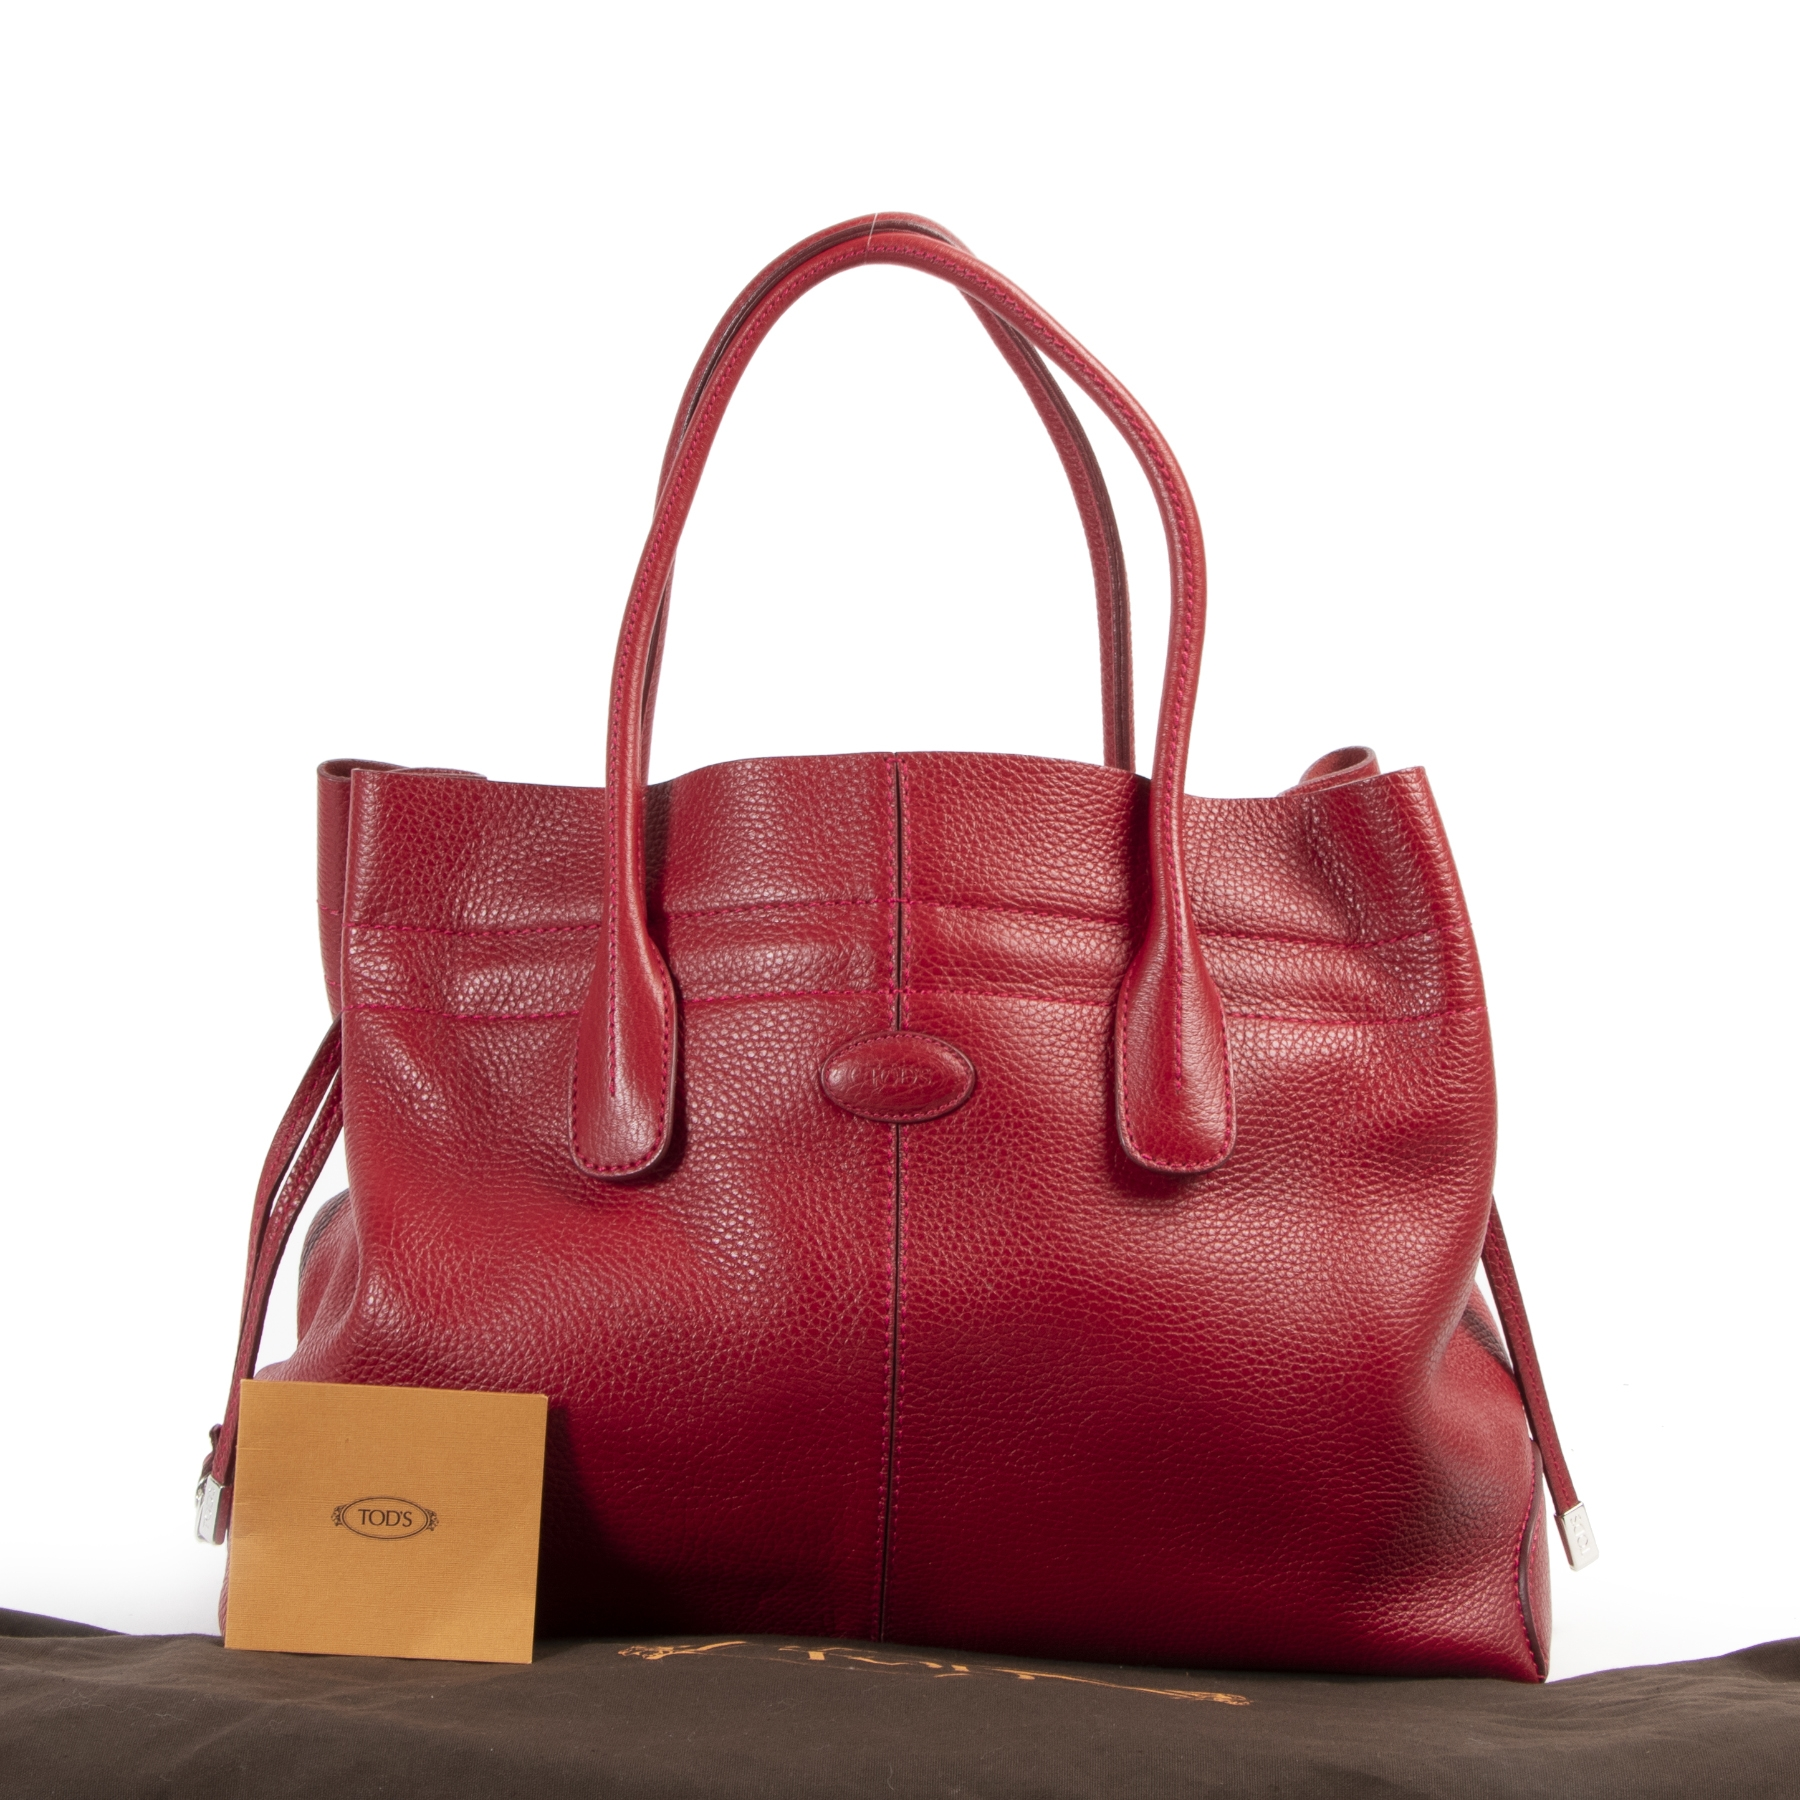 Authentieke tweedehands Tods handtassen LabelLOV Antwerpen online webshop Authentique second-main Tods sacs-à-main webshop Authentic secondhand preloved handbags Tods LabelLOV Antwerp online webshop